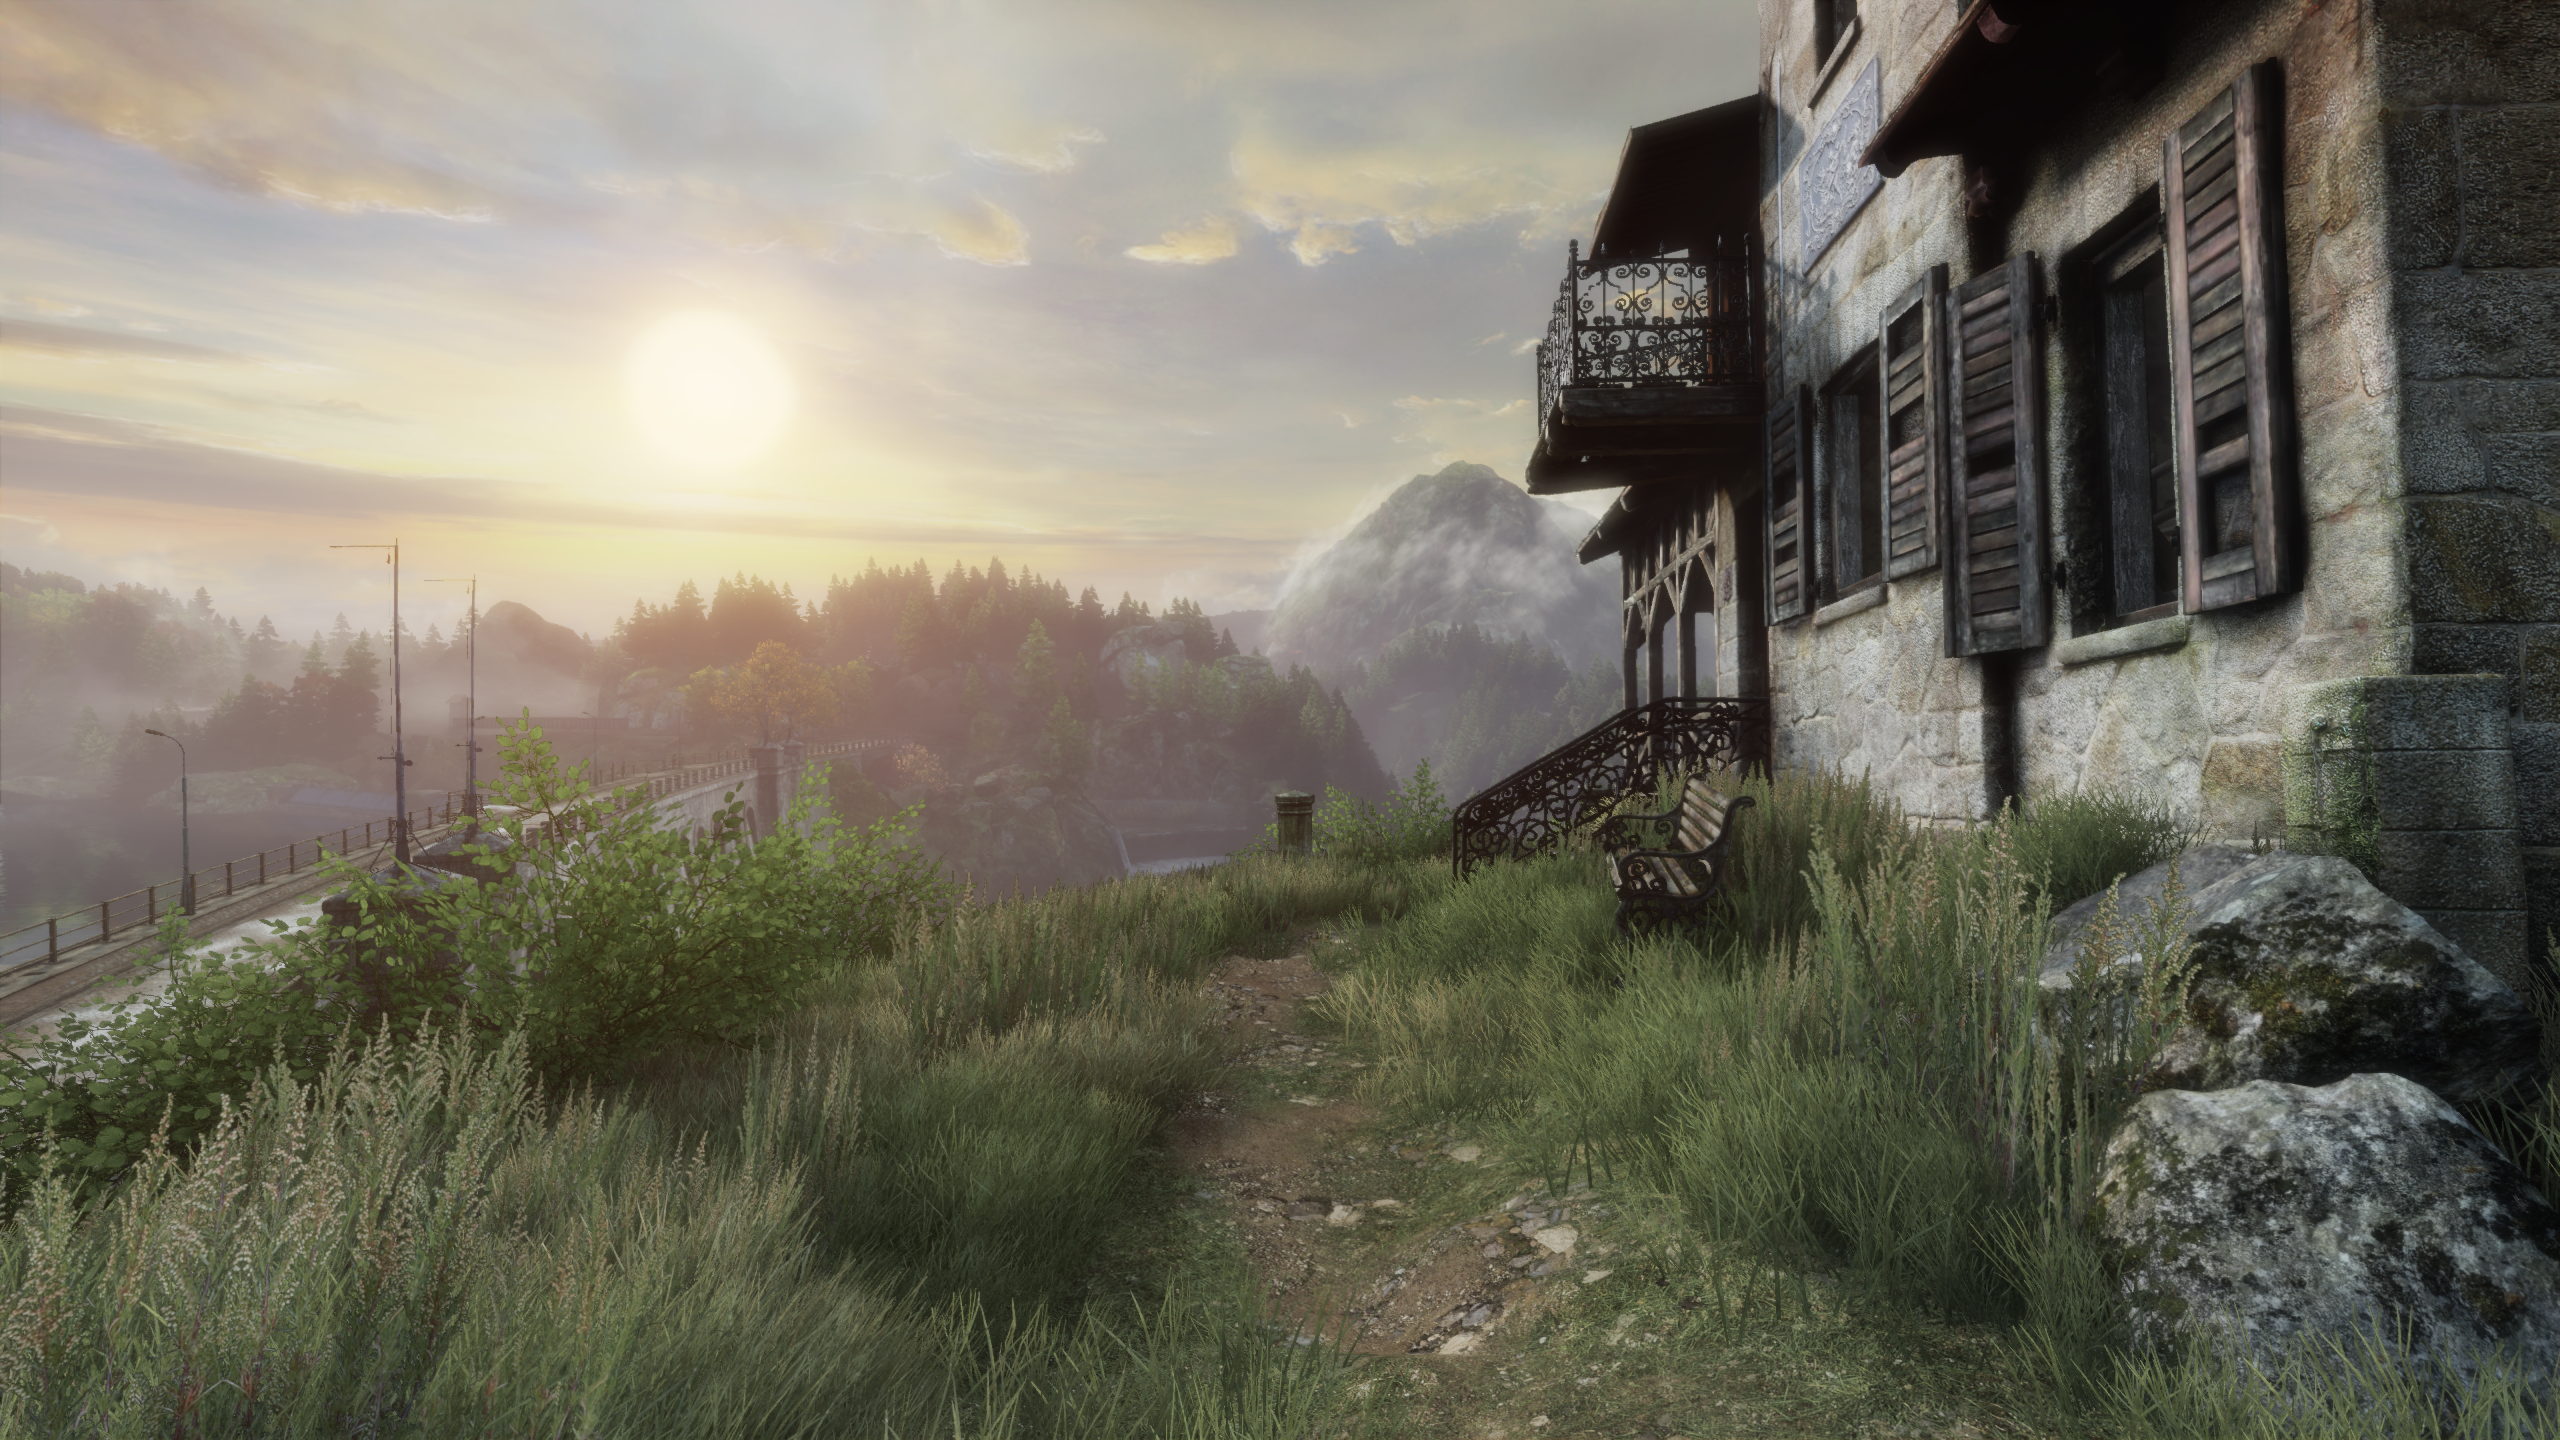 2672227-astronautsgame-win64-shipping+2014-09-28+10-20-14-71.png - Vanishing of Ethan Carter, the